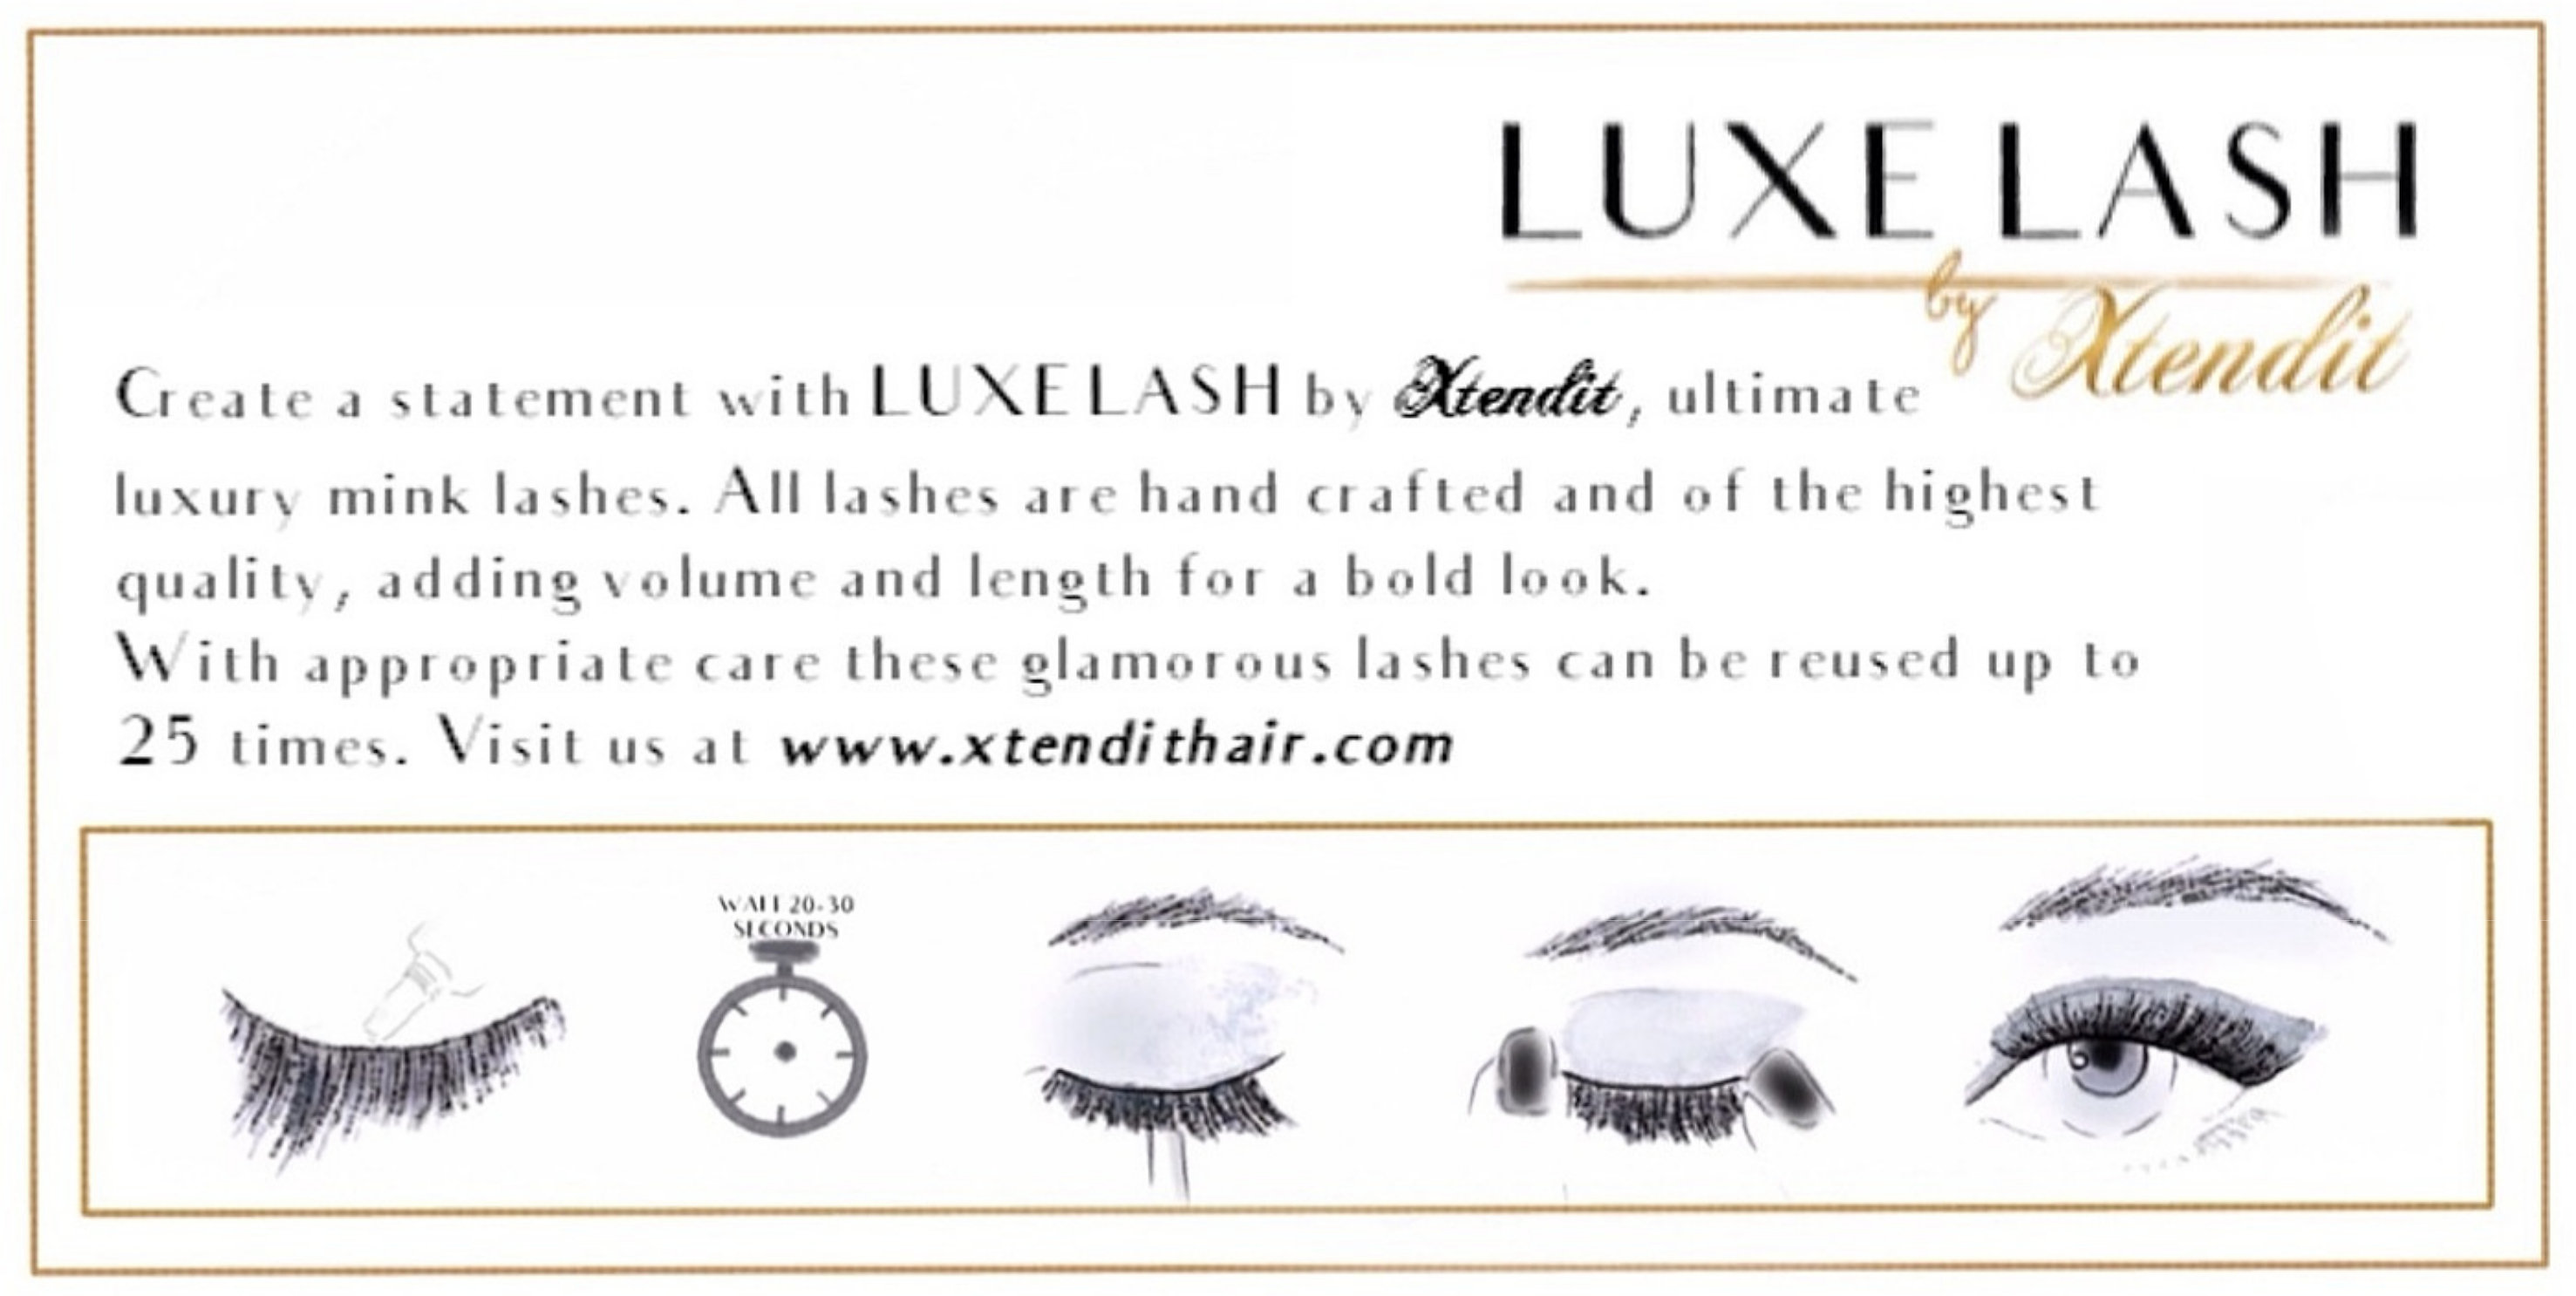 South west uk xtendit hair extensions luxe lash lola create a statement with luxe lash by xtendit ultimate luxury mink lashes all lashes are hand crafted adding volume and length for a bold look pmusecretfo Images